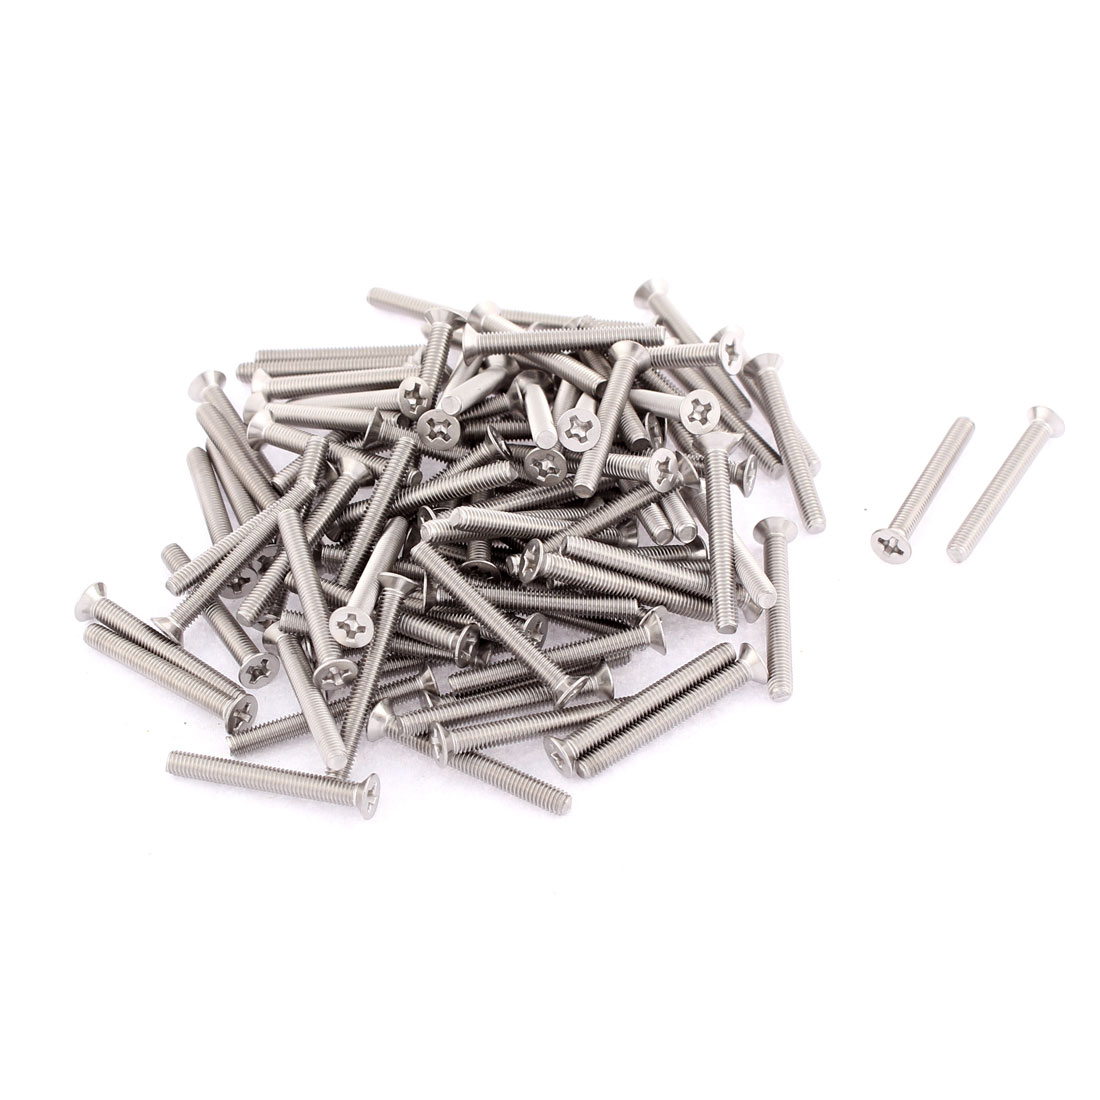 M3 x 25mm Phillips Head Stainless Steel Countersunk Bolts Machine Screws 100pcs